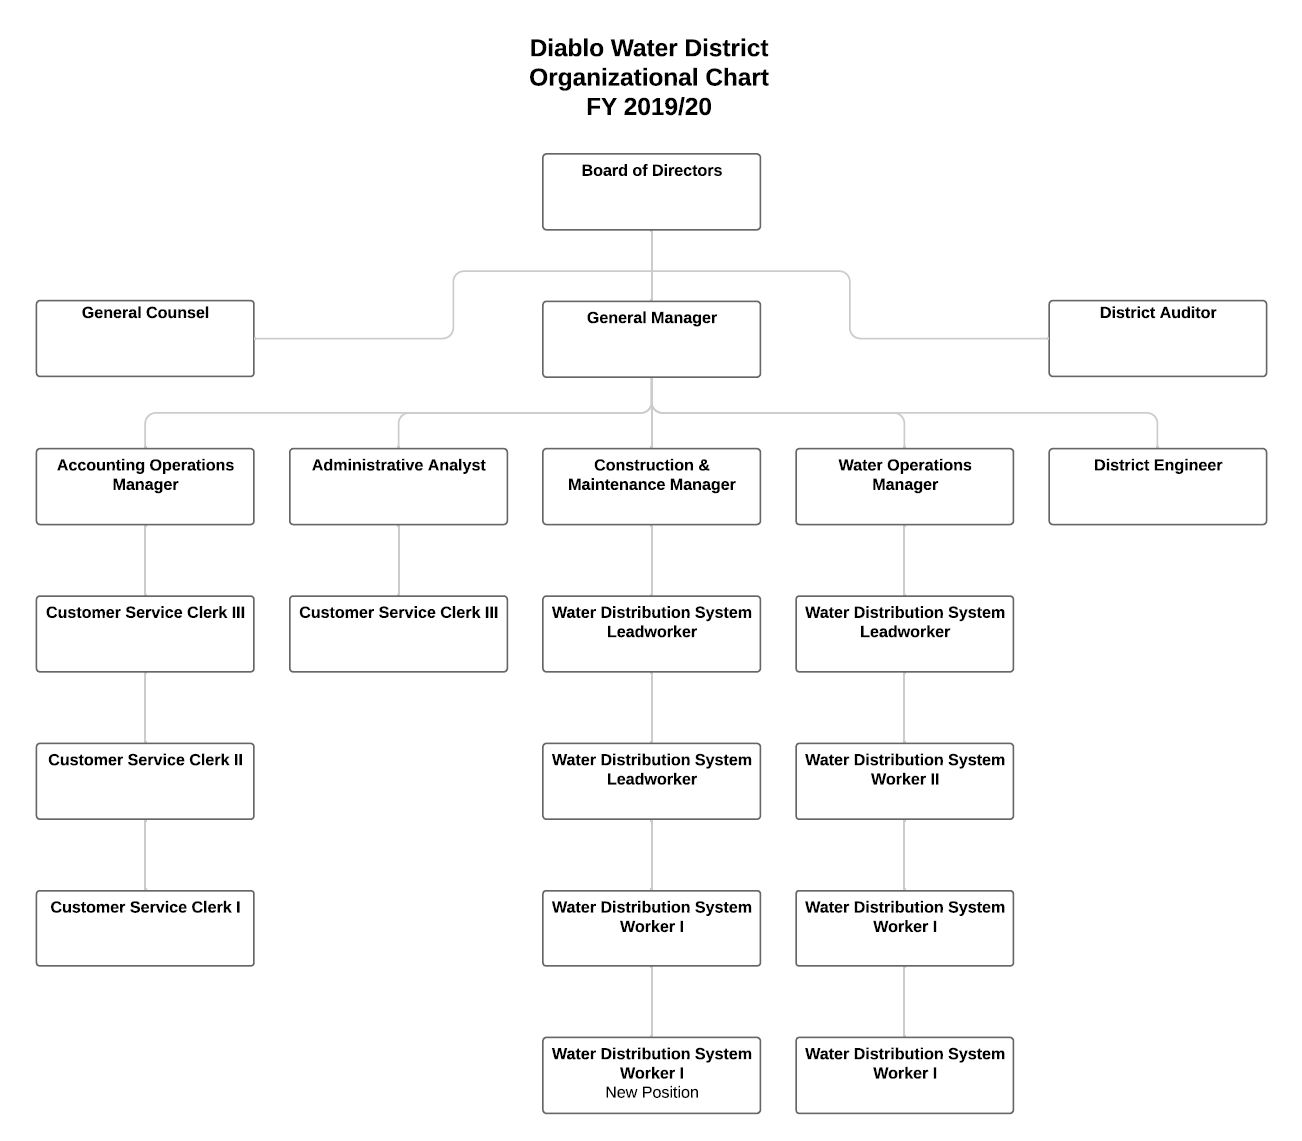 Organizational chart for FY 2019/20